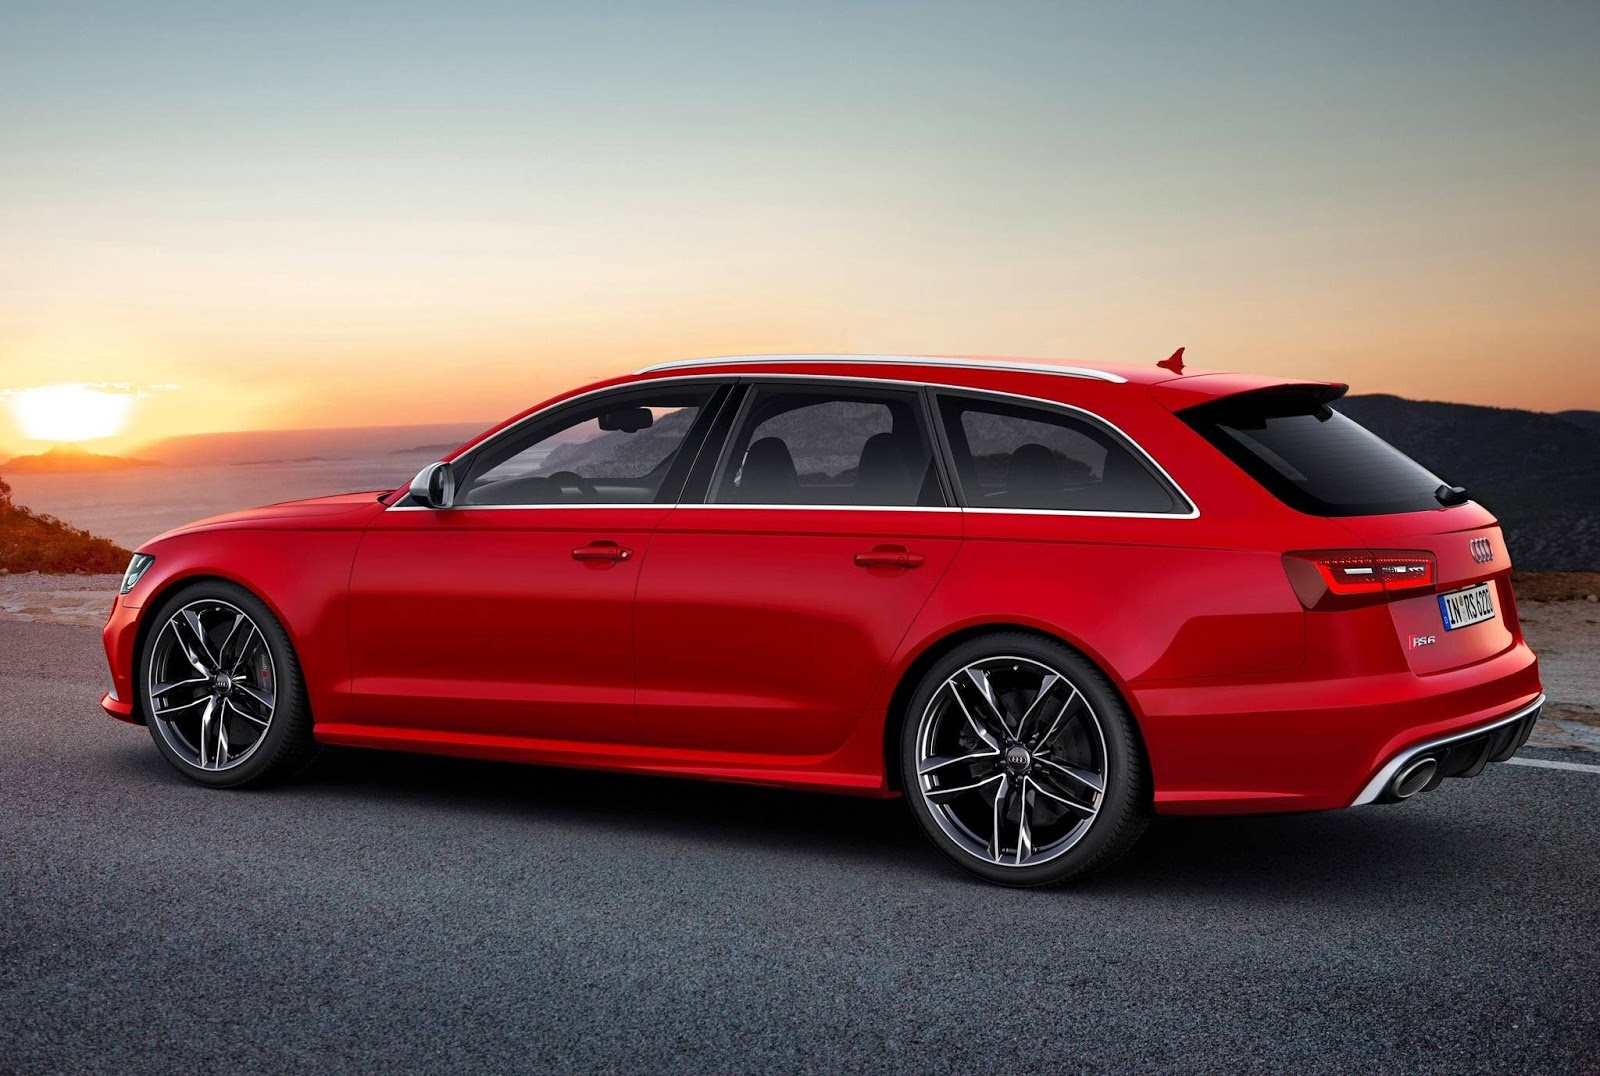 2014 Audi RS6 Avant Plus Car Prices HD Wallpaper - Prices 2017 Audi R Red on audi r18, audi r20, audi a6, audi r11, audi r70, audi lemans, audi aa, audi headquarters, audi hot rod, audi r25, audi z10, audi s4, audi a2, audi bus, audi r100, audi r9, audi a9, audi urban concept, audi museum,